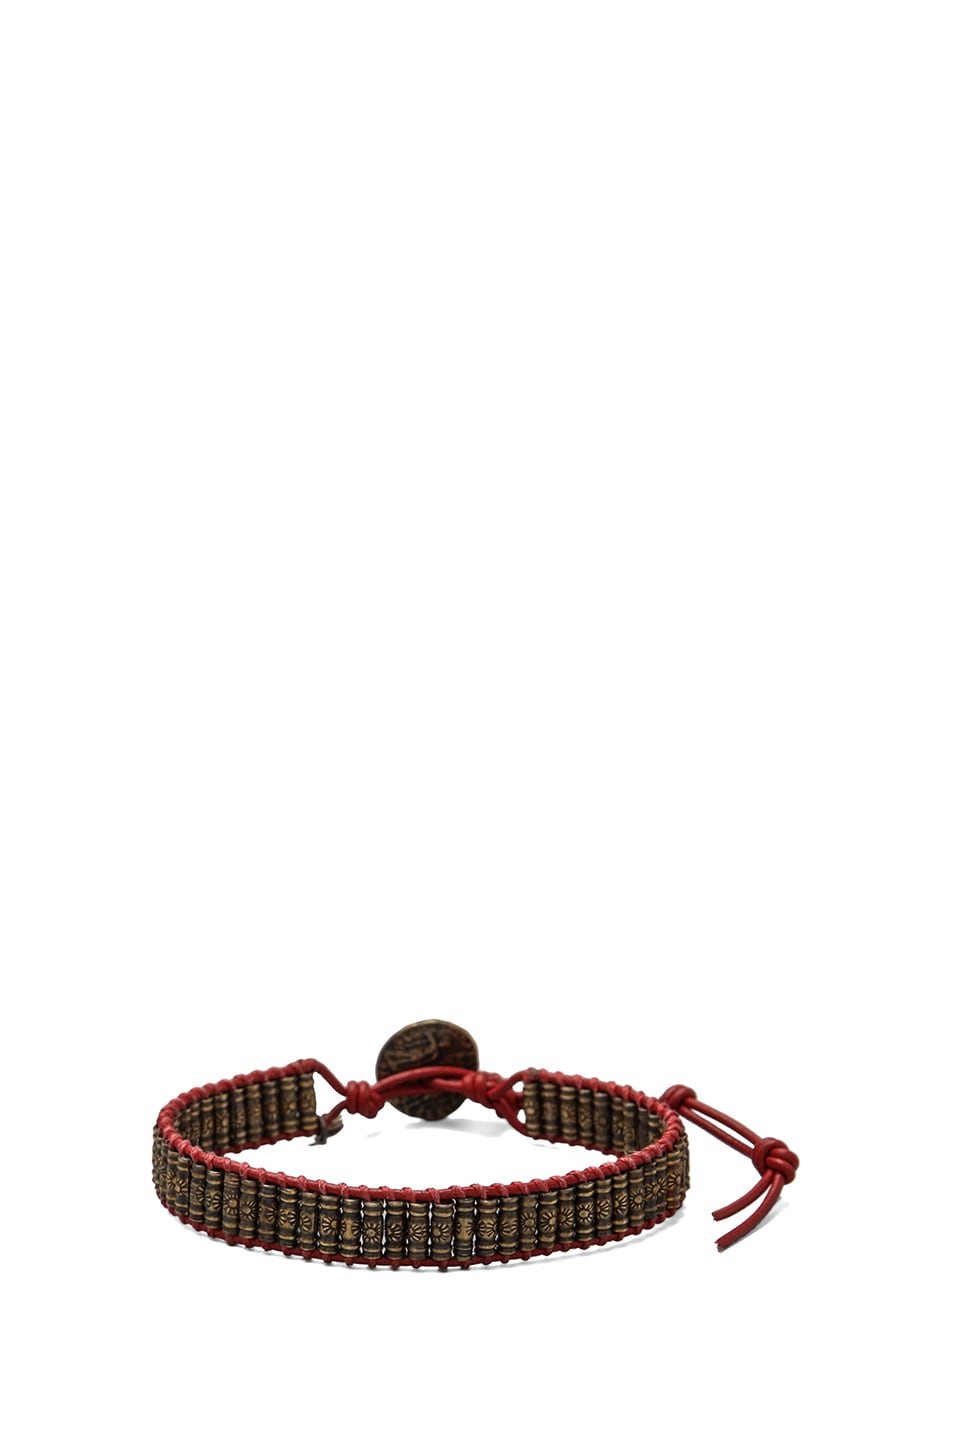 M.Cohen Oxidized Brass Stamped Beaded Bracelet in Red